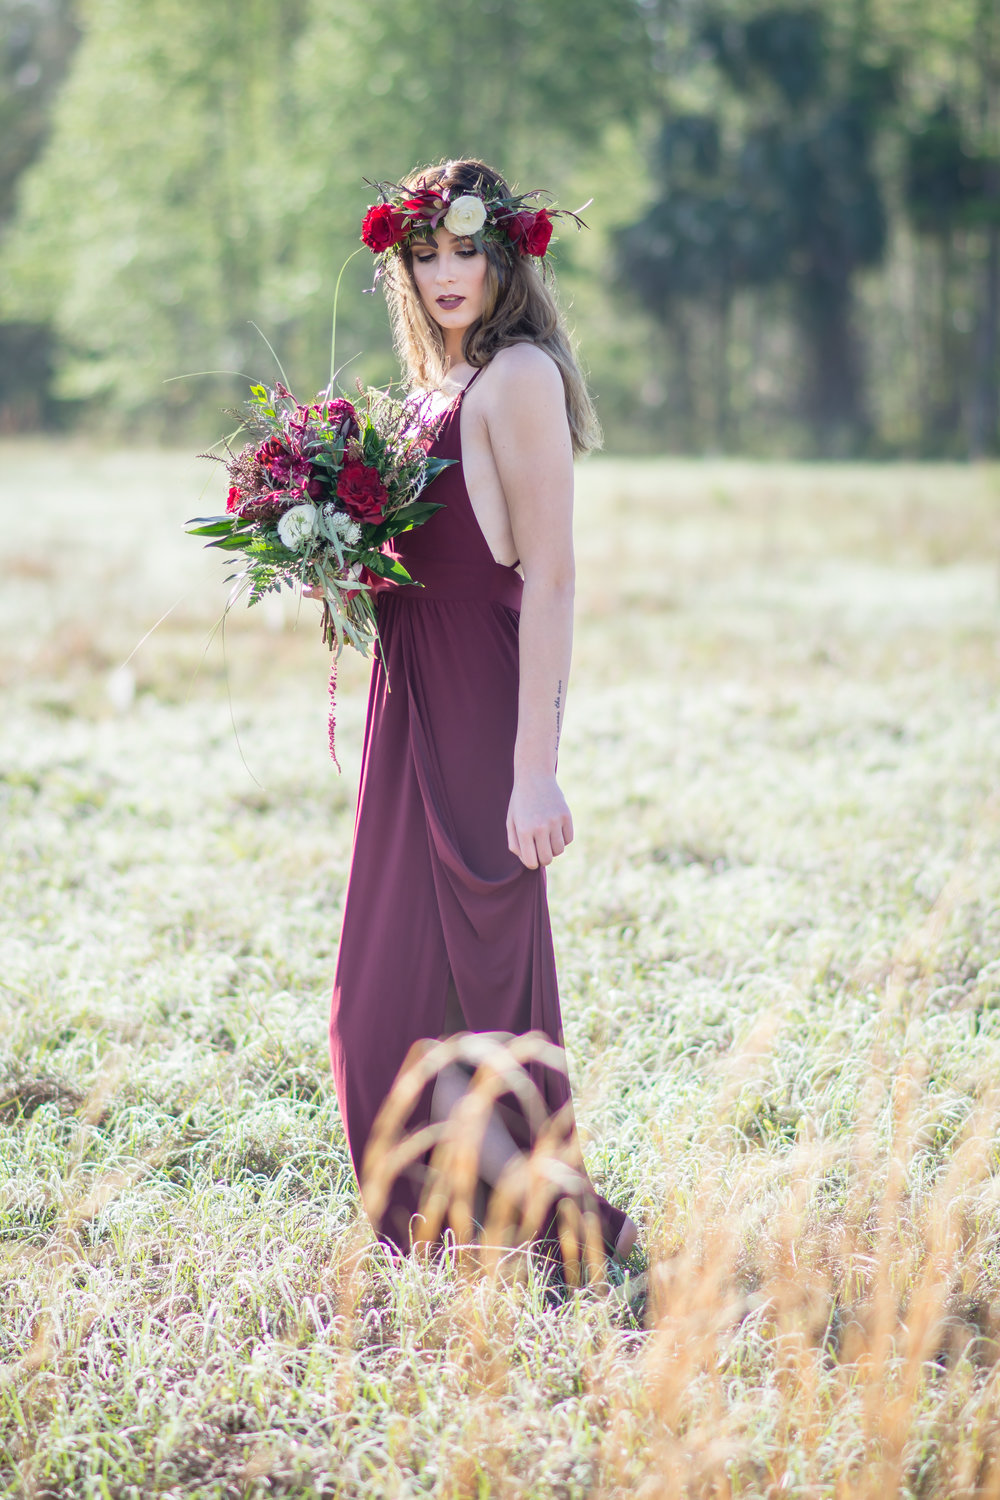 Shot in natural light with an 85mm lens. This session was featured in Magazines and Premier Wedding Blogs! Find the links to the features in this  post .